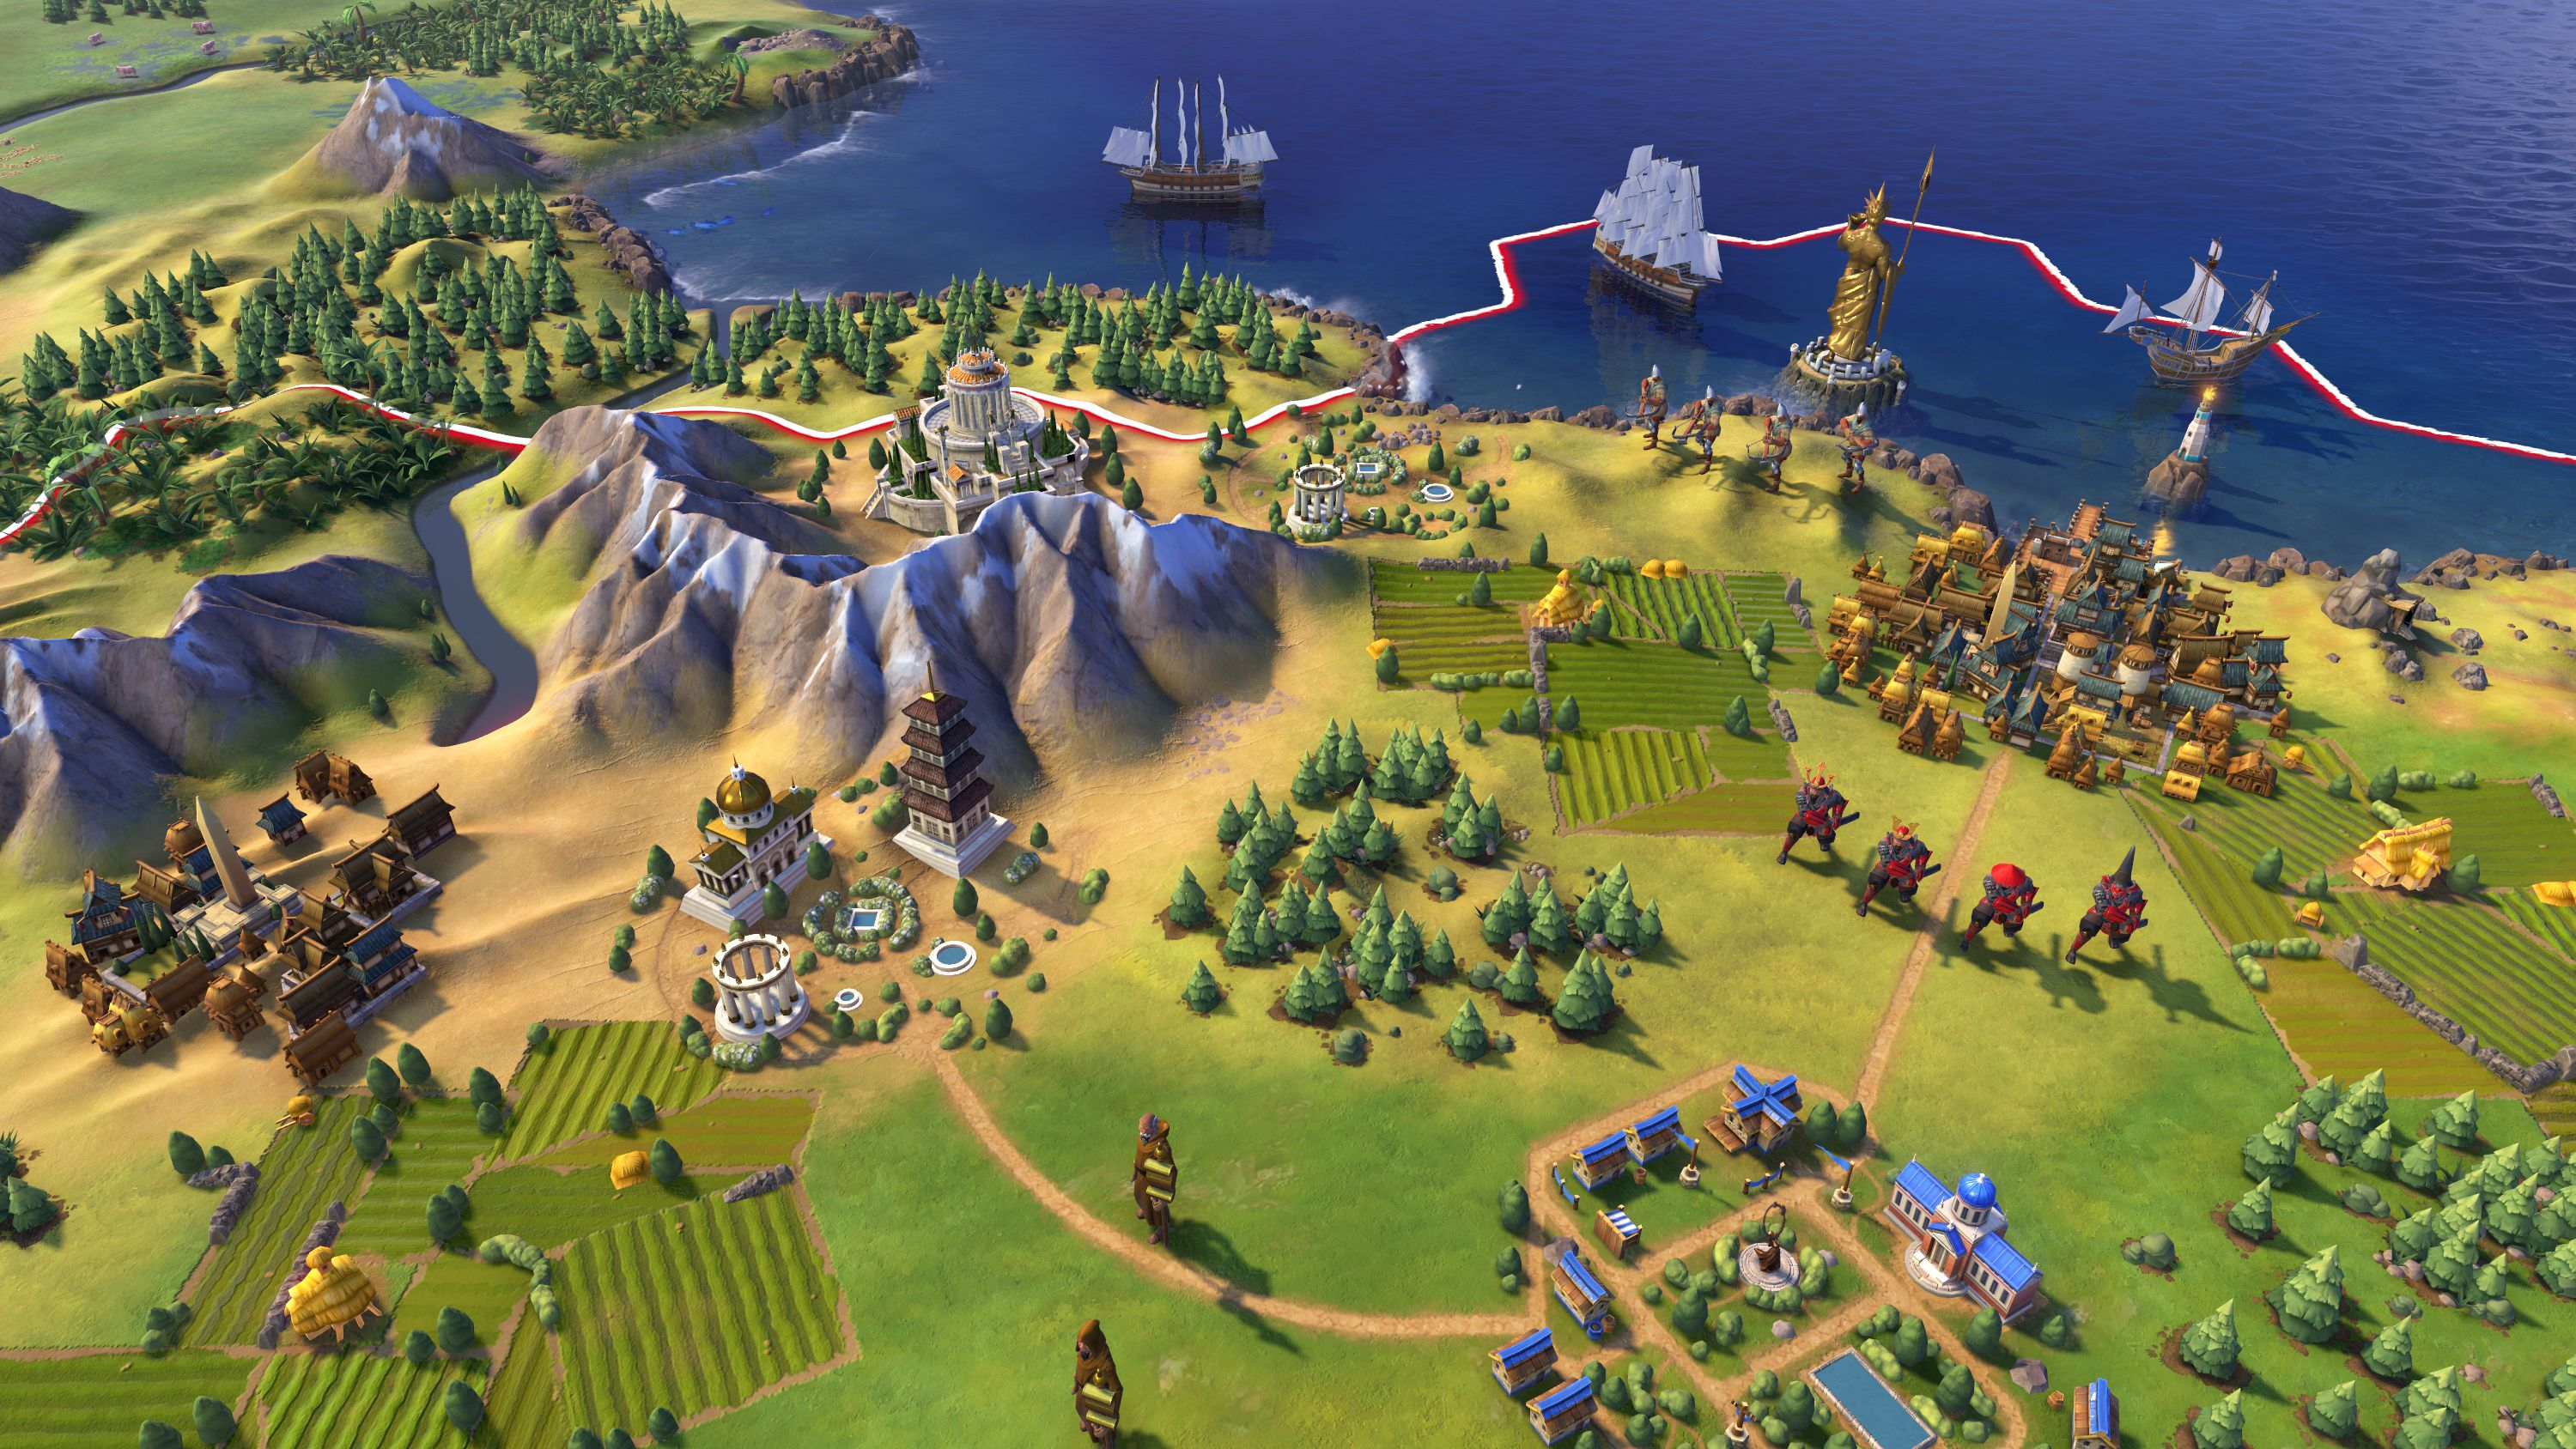 Pin Civilization 6 Release Date Image Search Results on Pinterest